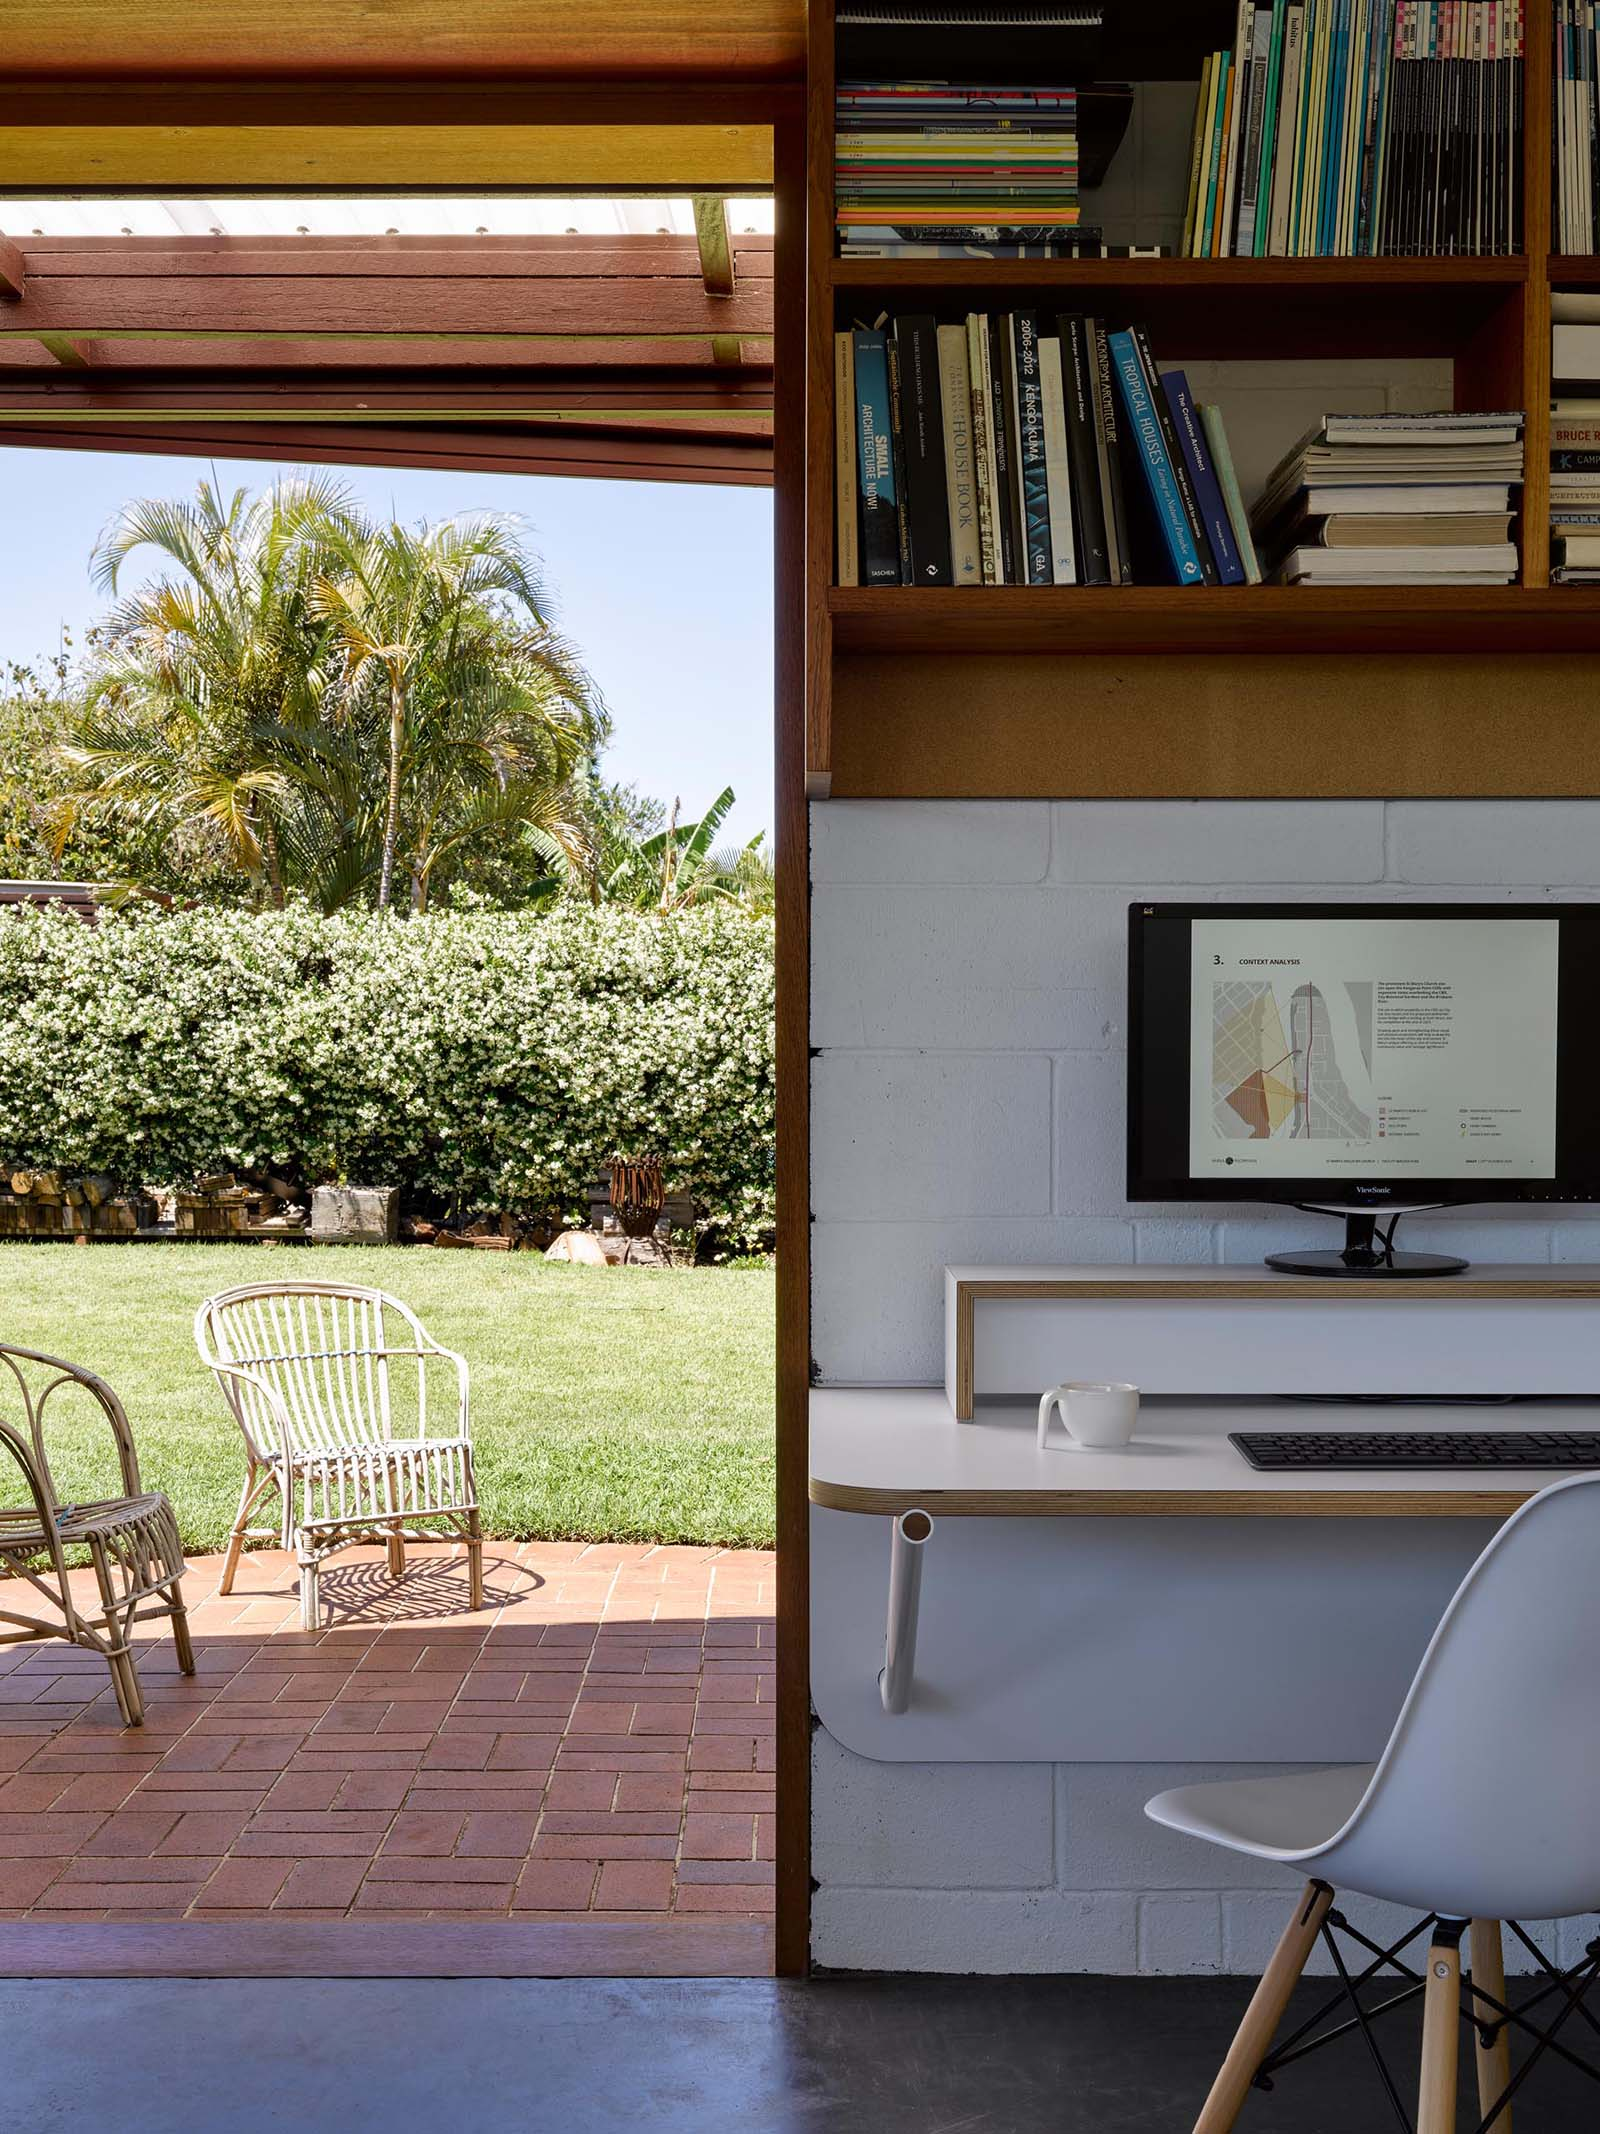 A backyard home office with a brick patio.